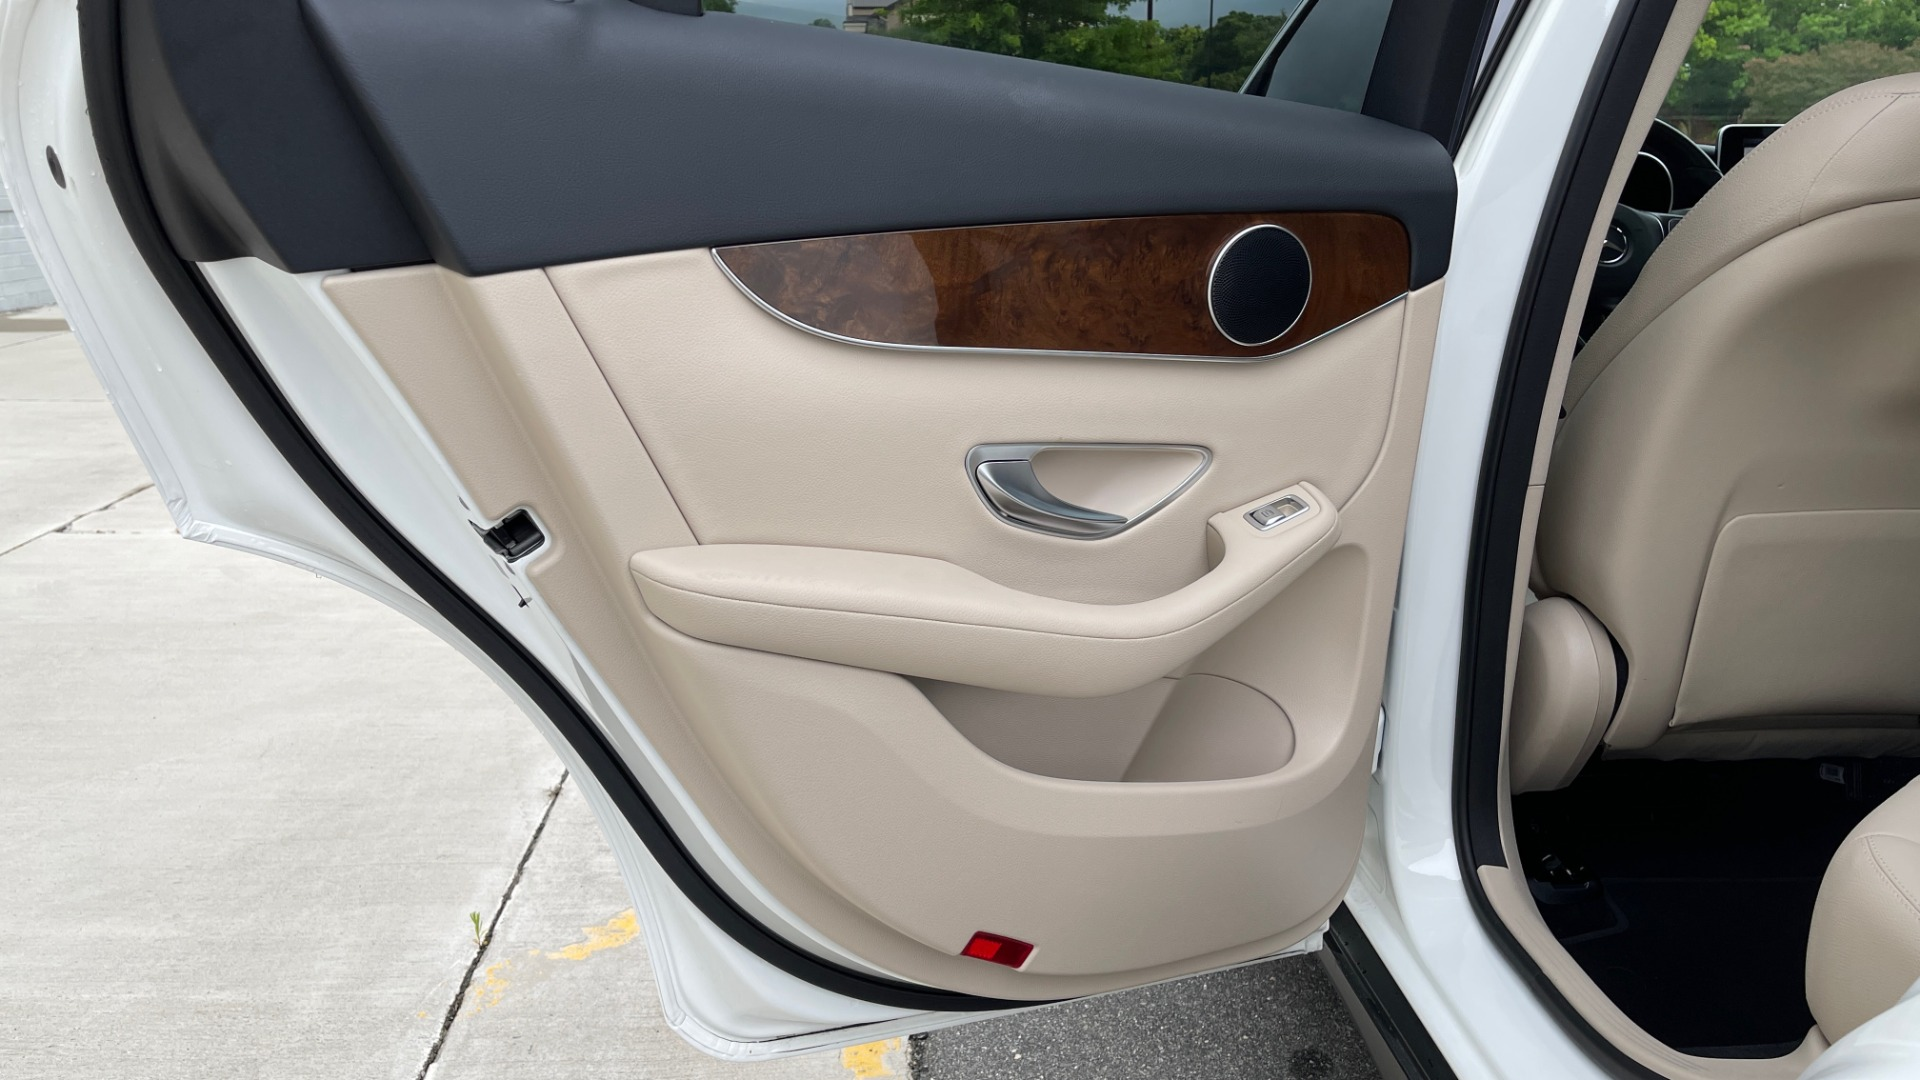 Used 2018 Mercedes-Benz GLC 300 PREMIUM / PANO-ROOF / HTD STS / PARK ASST / REARVIEW for sale $34,613 at Formula Imports in Charlotte NC 28227 45